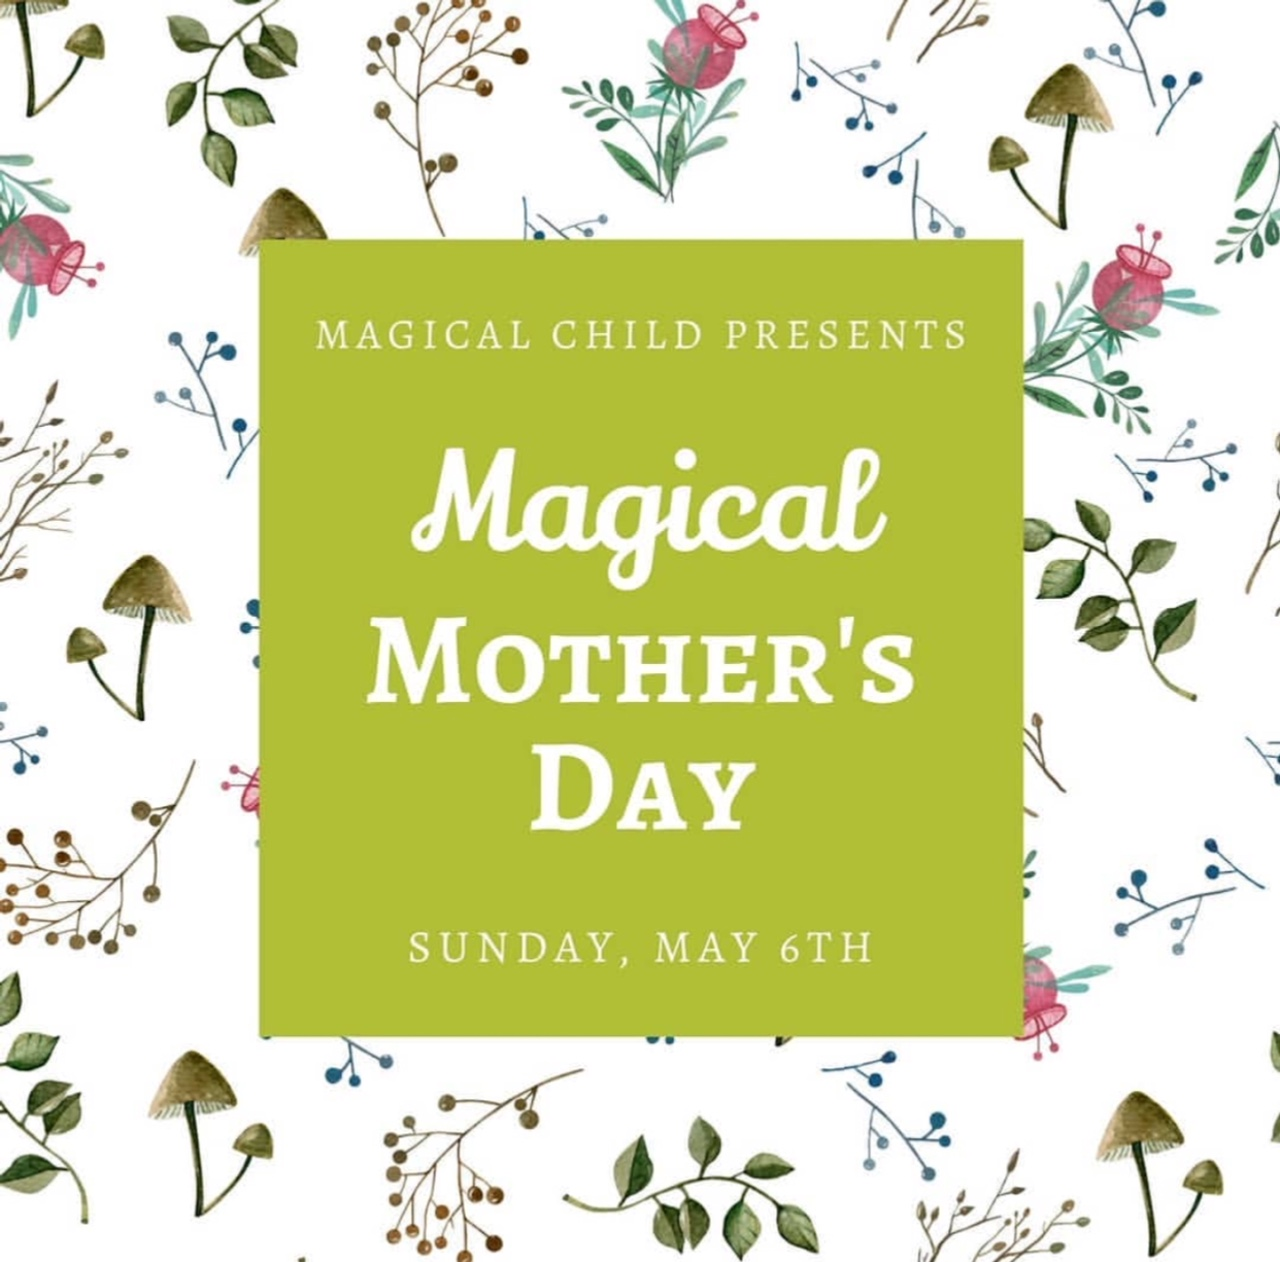 Wildcraft Urban - Magical Child - Mother's Day Event